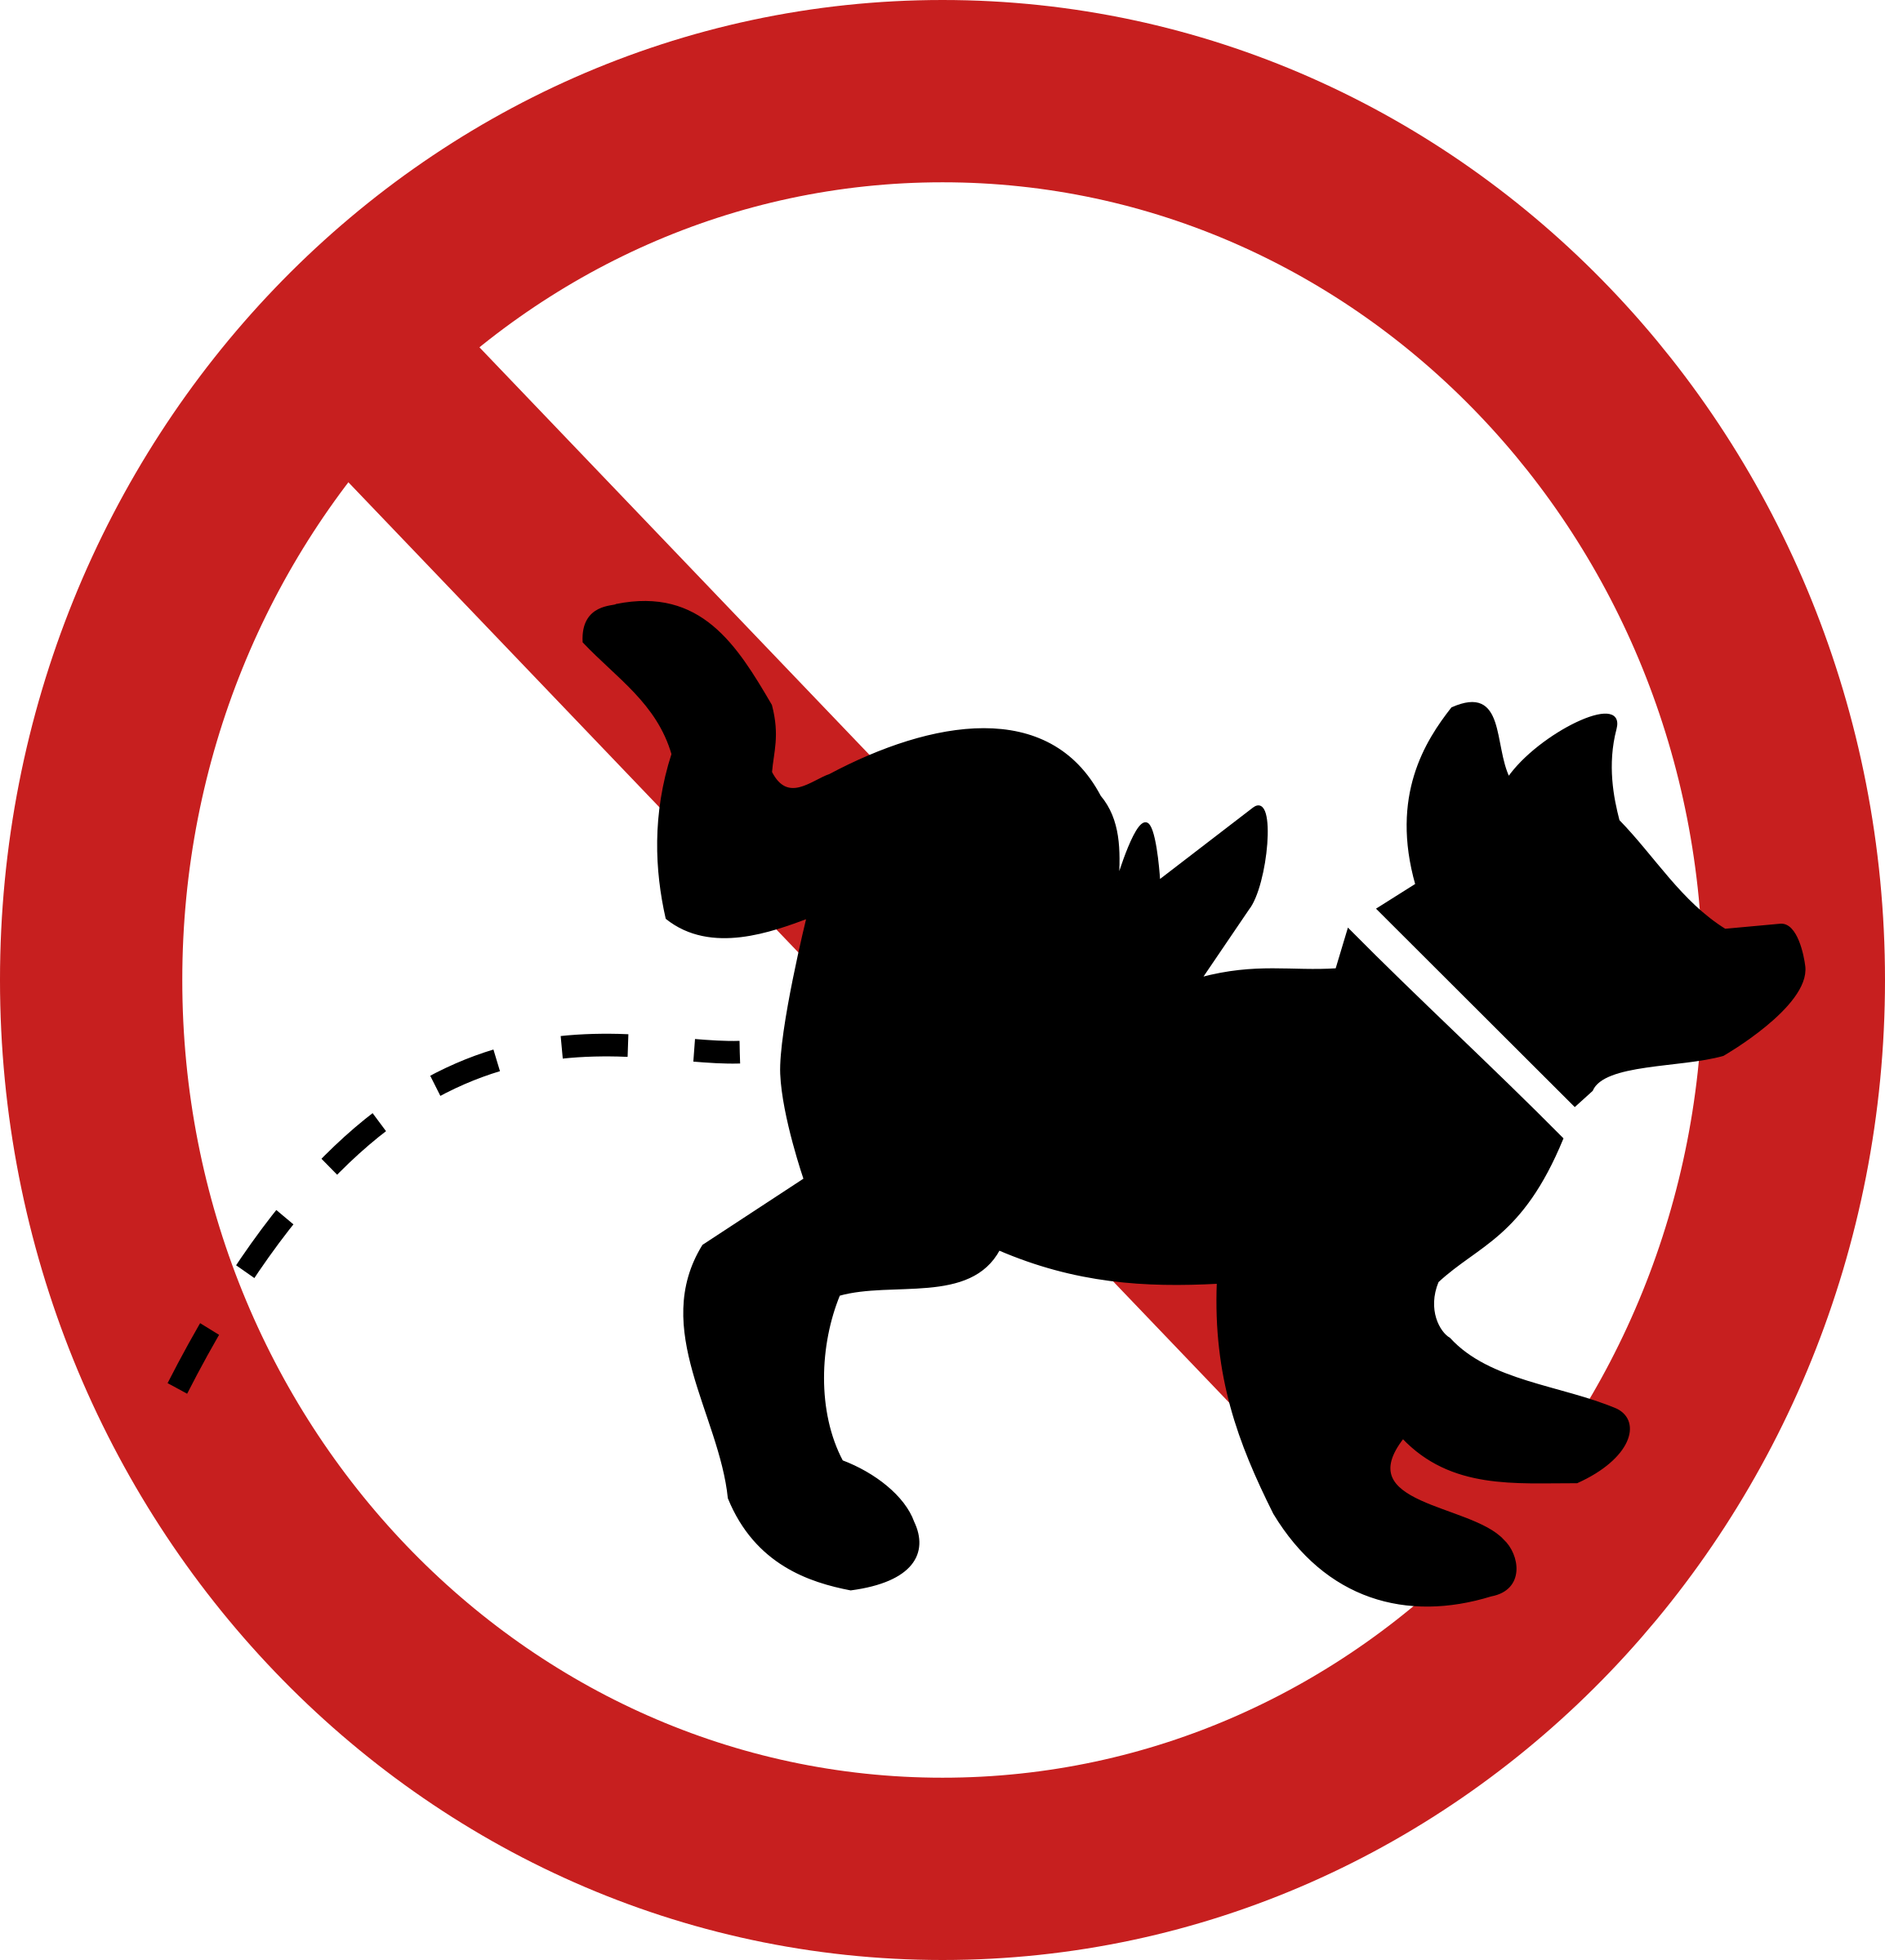 Dog poop clipart free. No peeing sign big